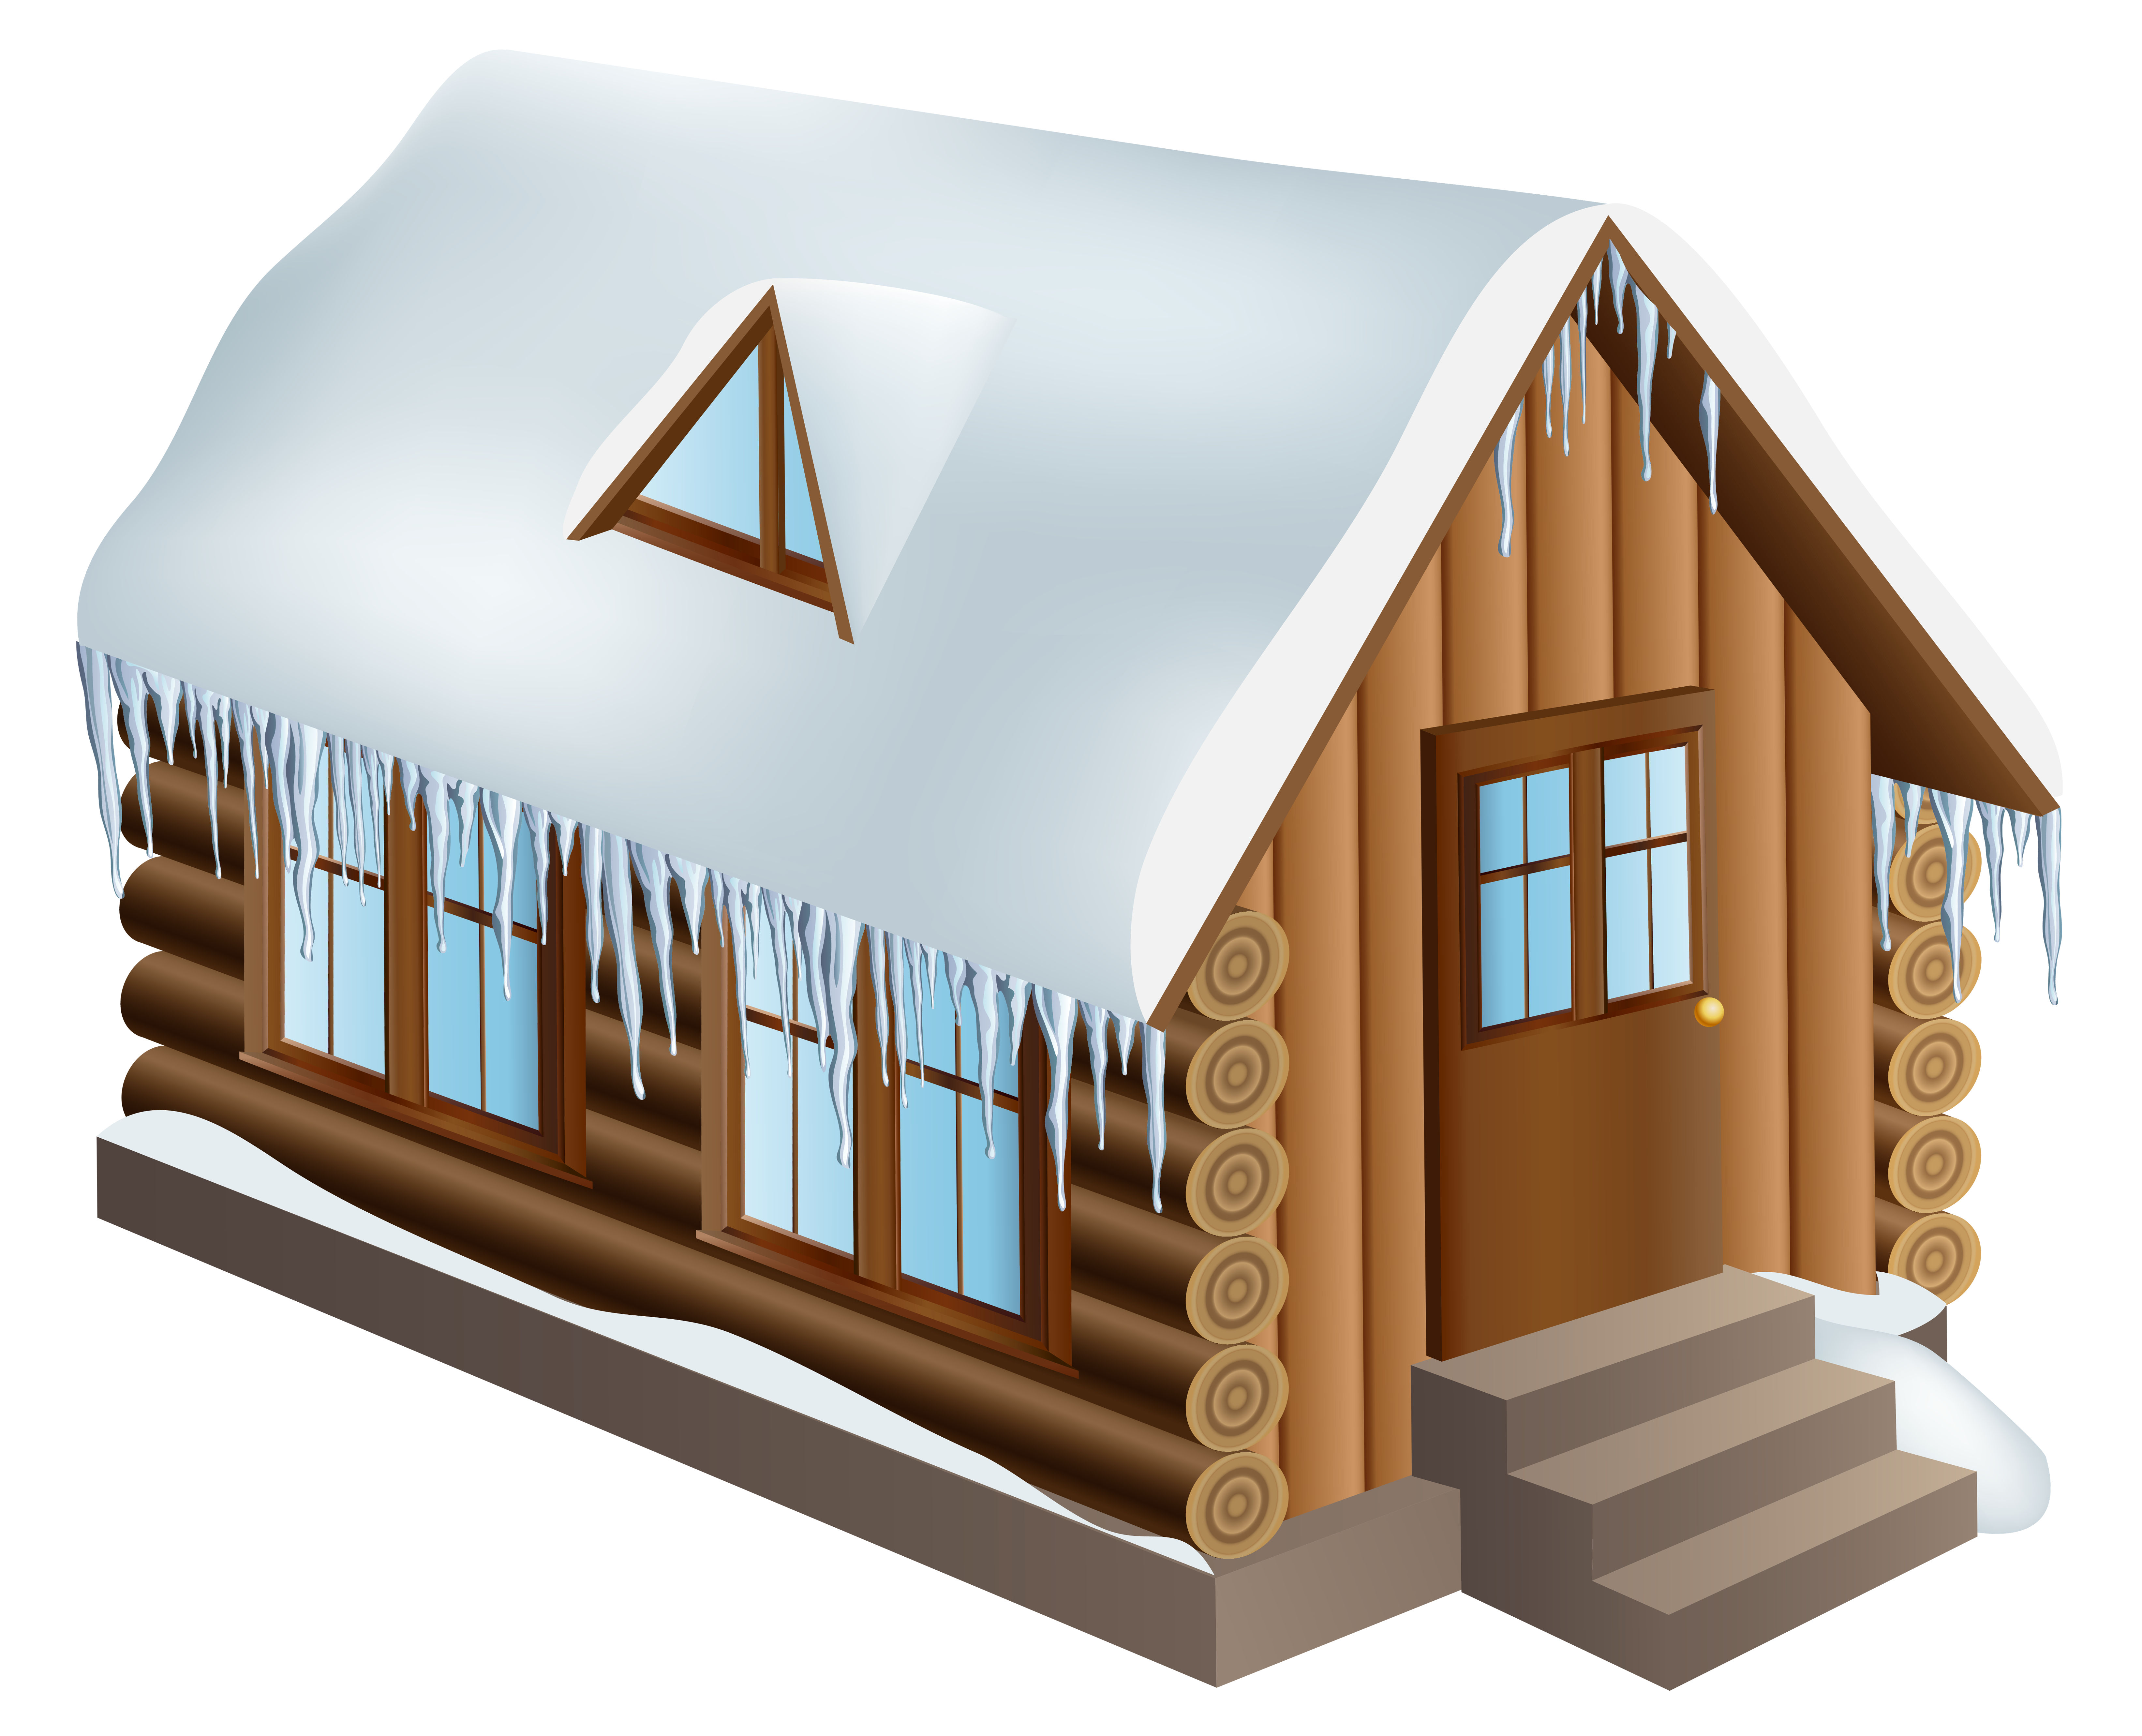 Cabin house png clip. Cottage clipart winter graphic freeuse download